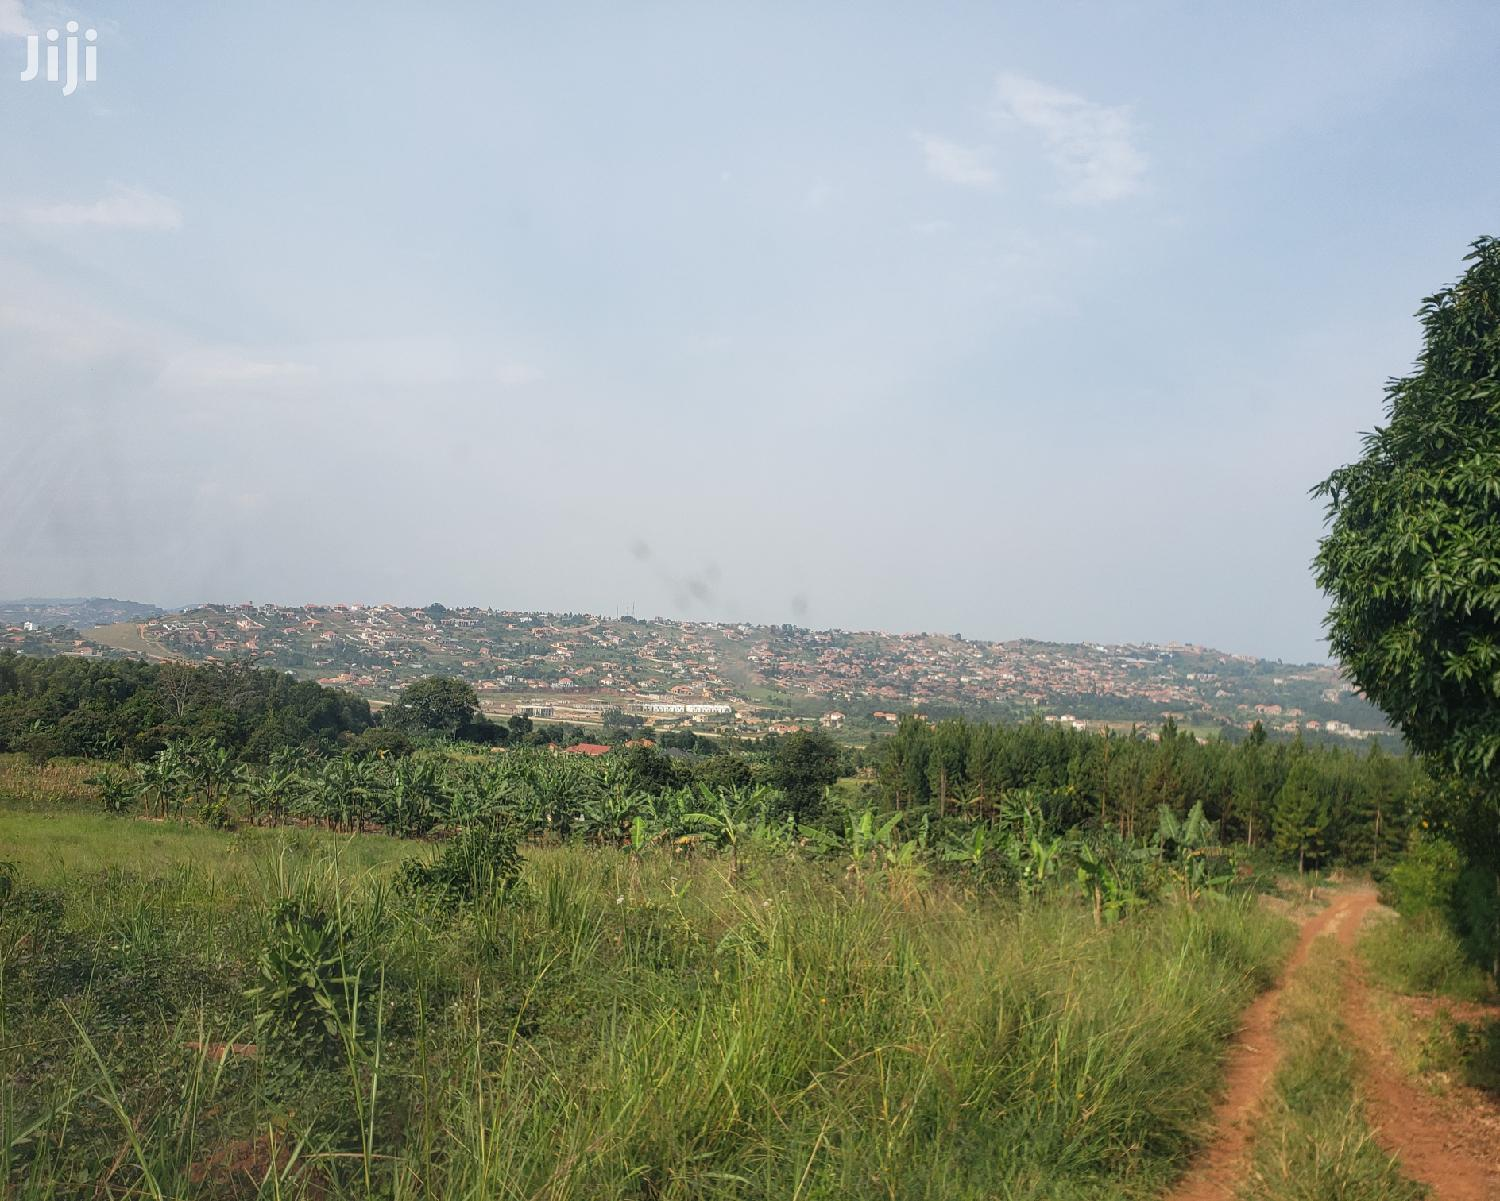 Land Available in Sisa